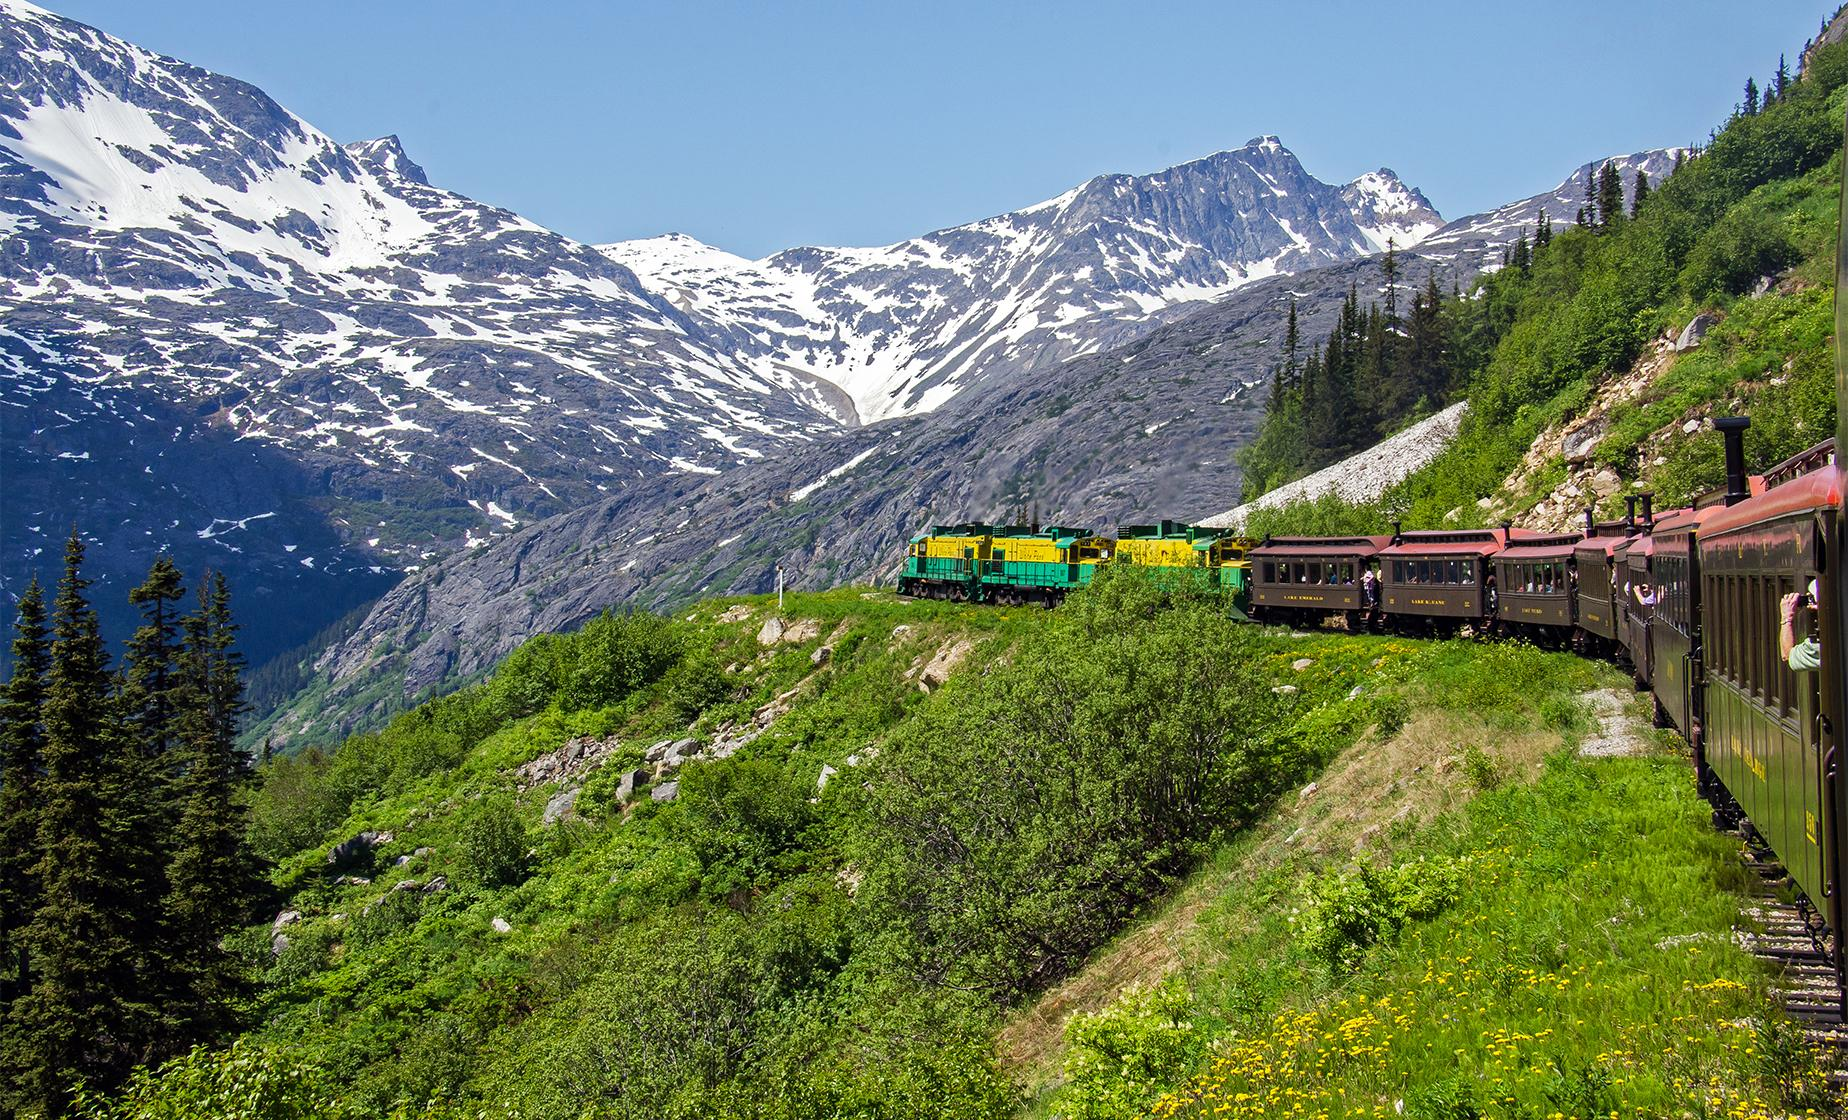 White Pass Summit Railway Cruise Tour from Skagway | Pitchfork Falls & Tormented Valley